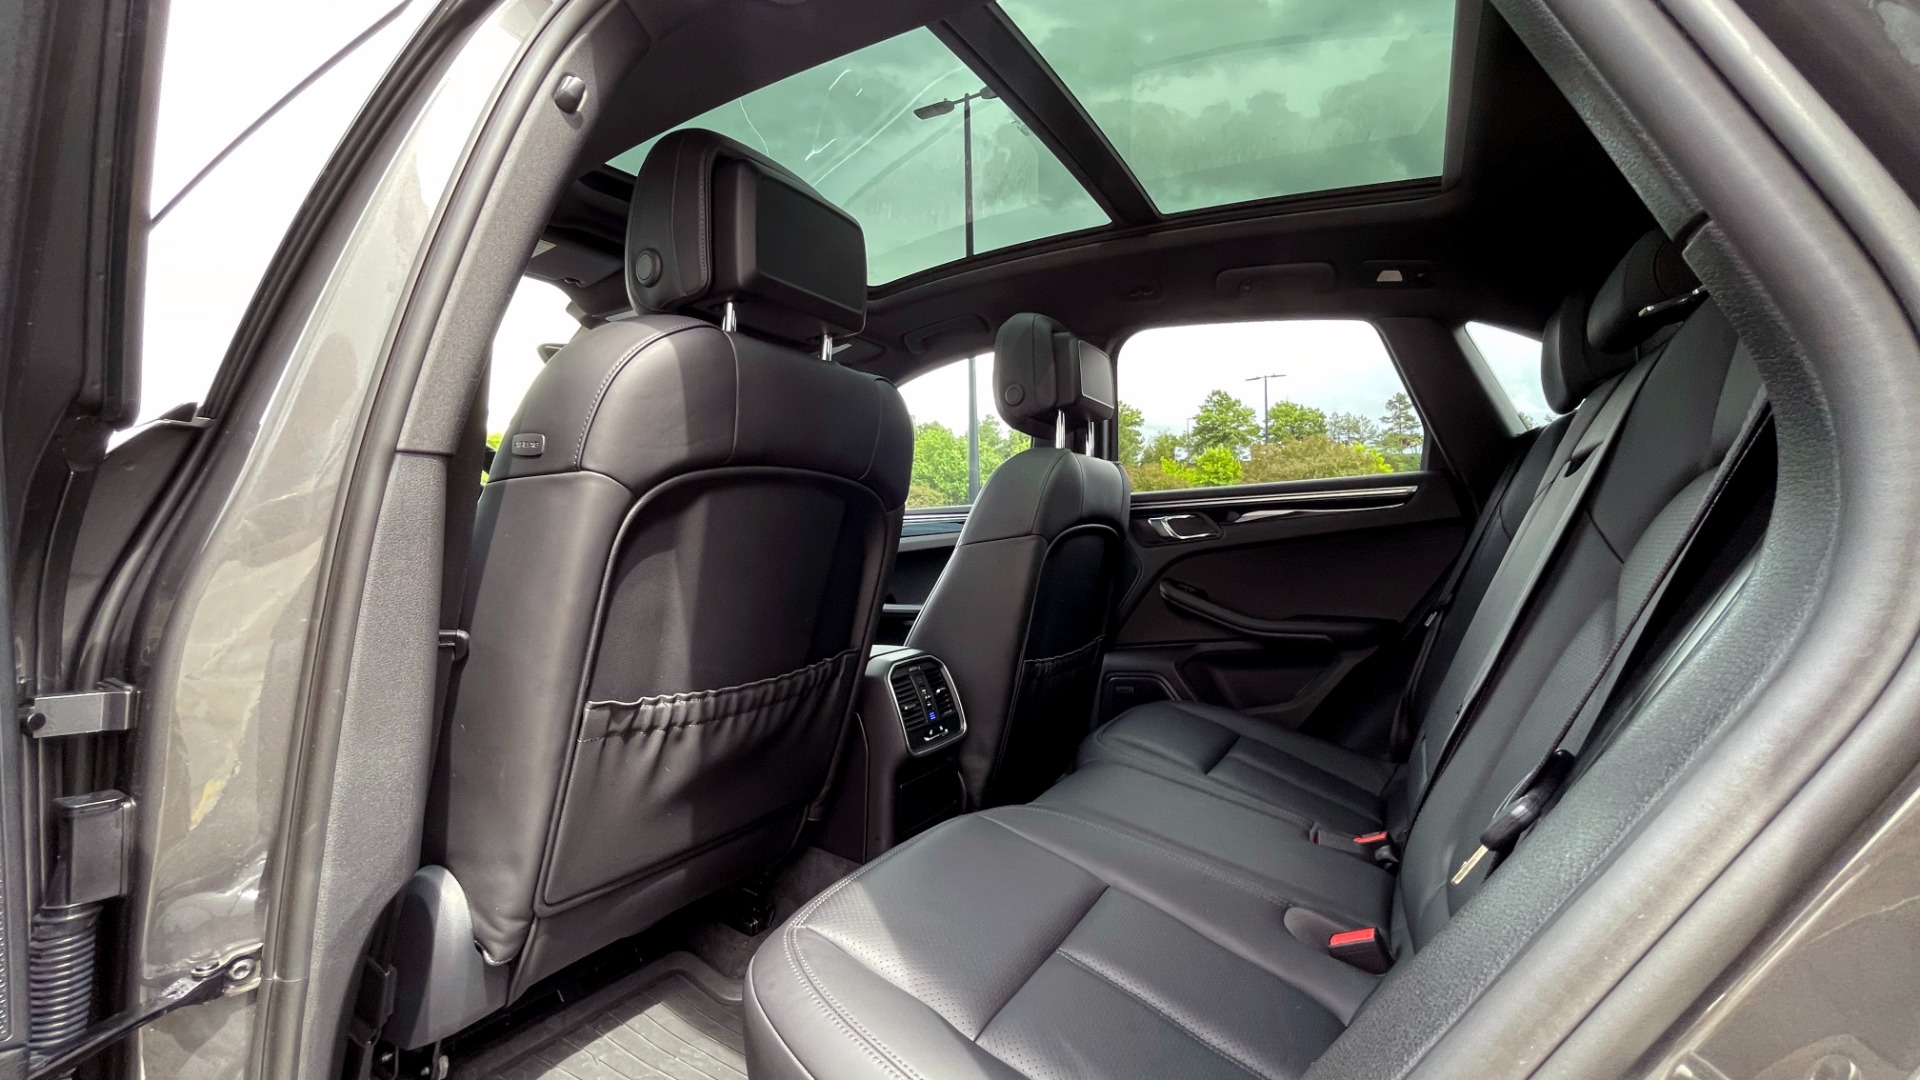 Used 2016 Porsche MACAN S PREMIUM PLUS / AWD / NAV / BOSE / SUNROOF / LCA / PARK ASST / INFOTAINMEN for sale $45,256 at Formula Imports in Charlotte NC 28227 62